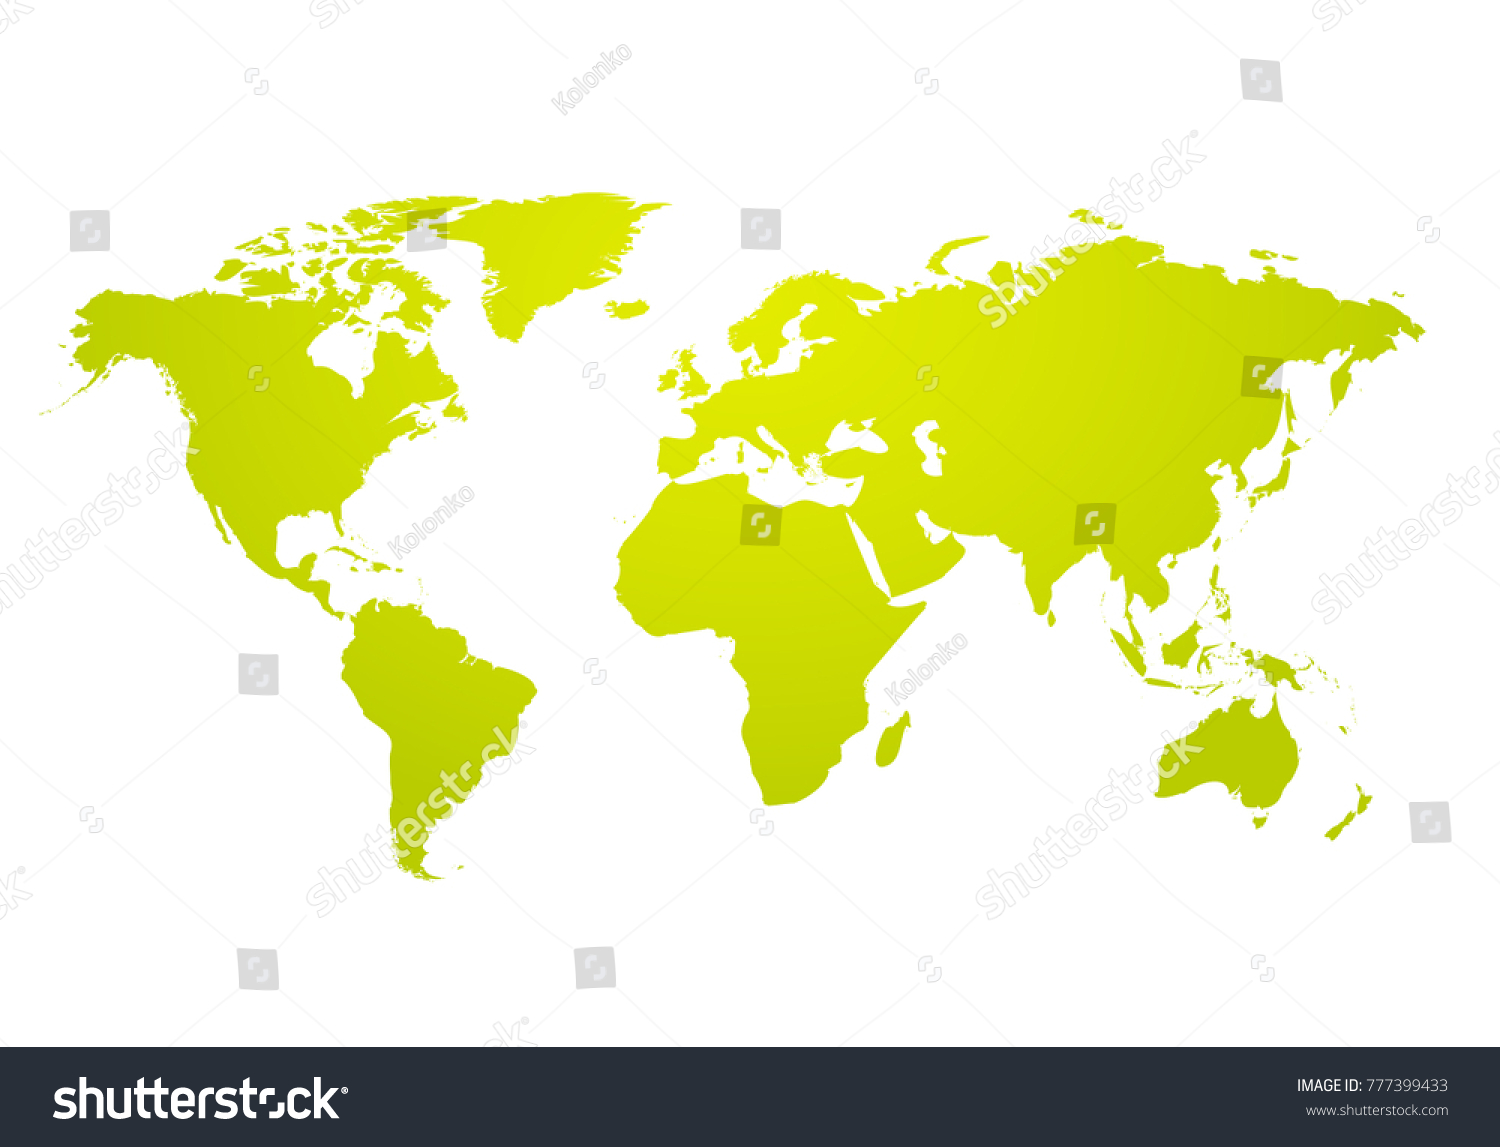 Vector world map global earth icon stock vector 777399433 vector world map global earth icon stock vector 777399433 shutterstock gumiabroncs Choice Image